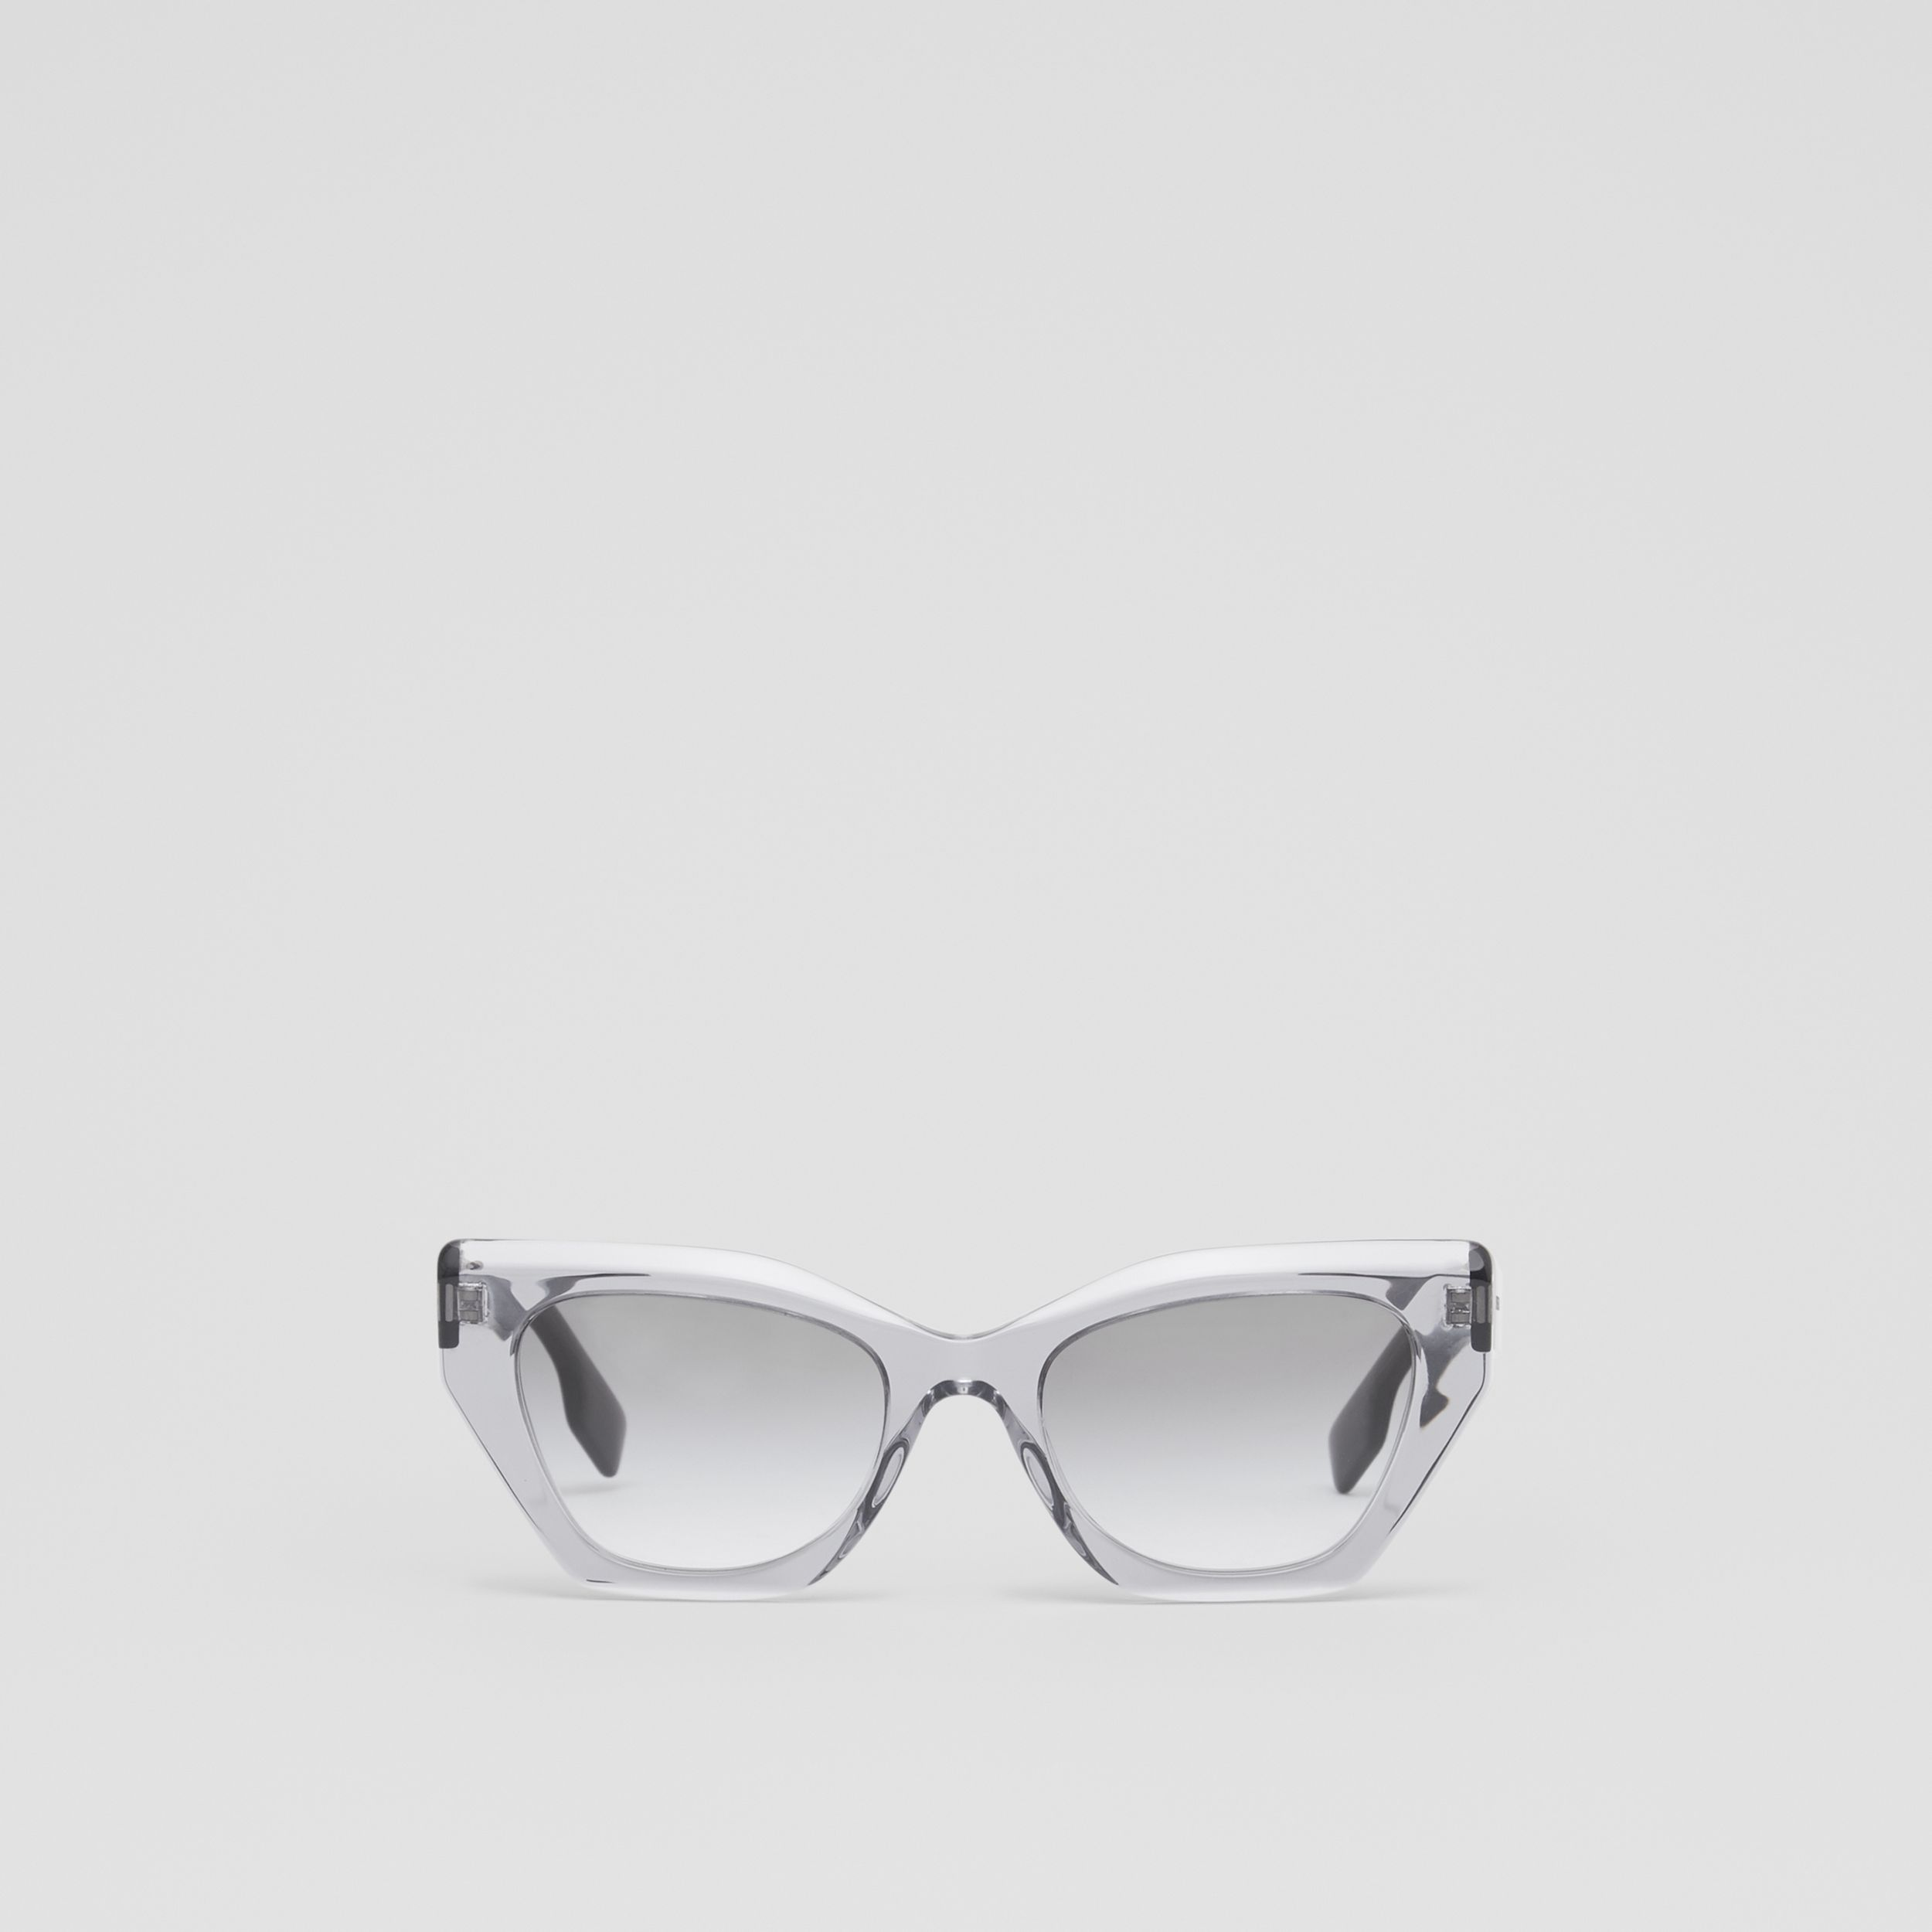 Butterfly Frame Sunglasses in Grey - Women | Burberry - 1